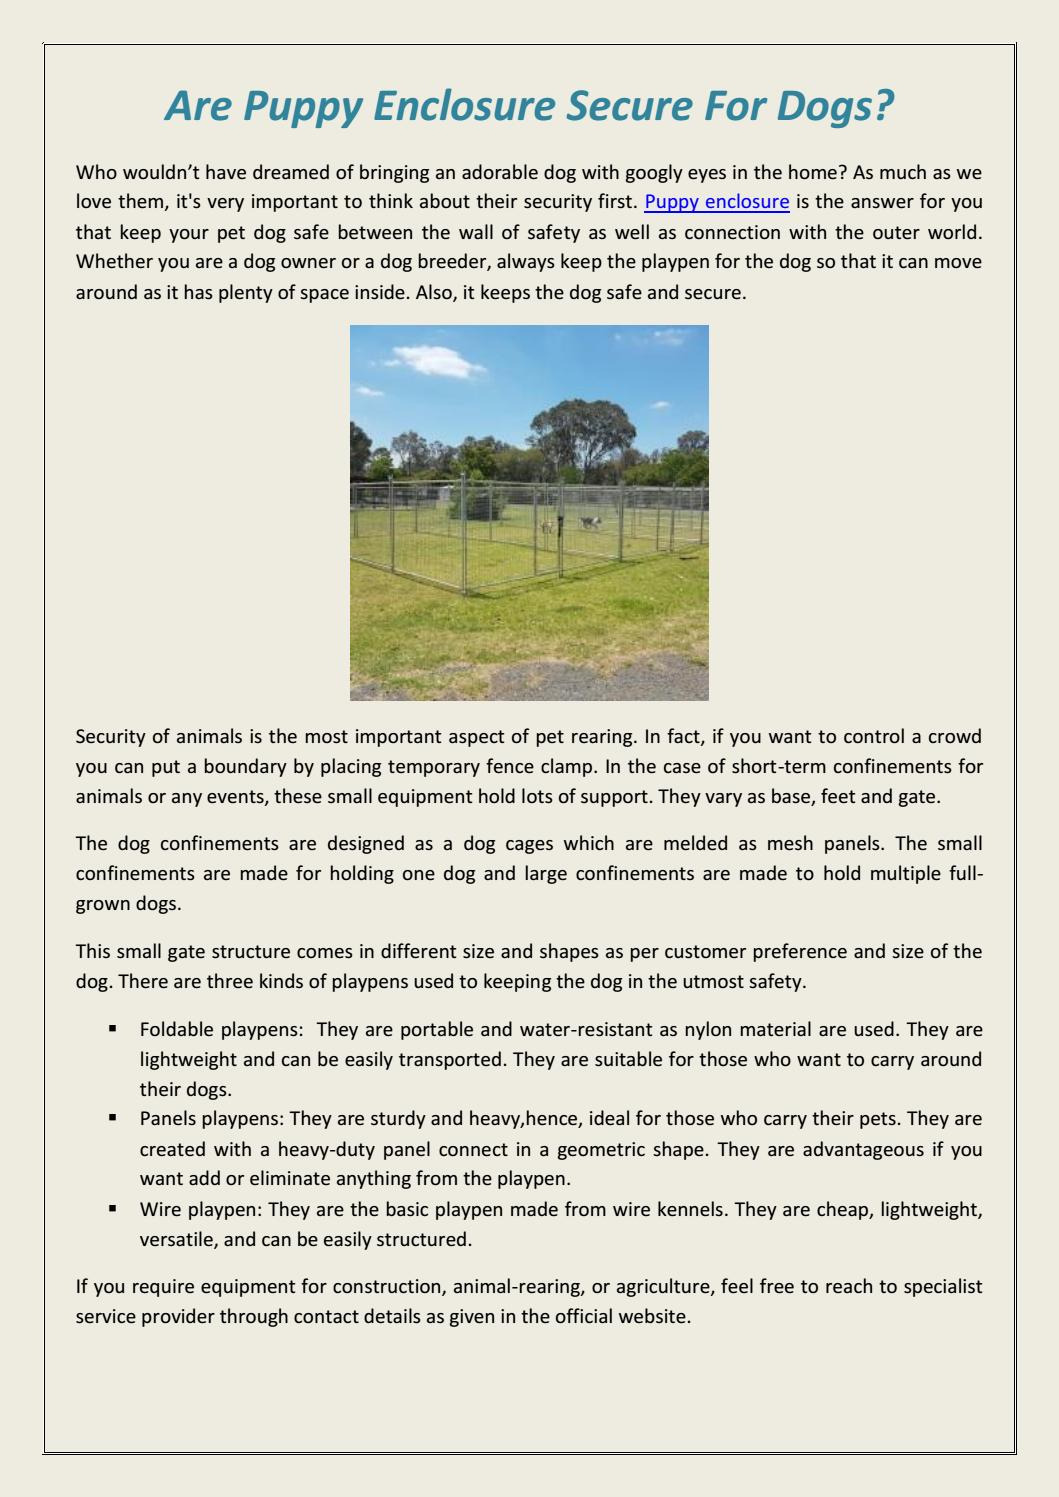 Temporary Small Dog Fence Inspirational are Puppy Enclosure Secure for Dogs by Roger Creigh issuu